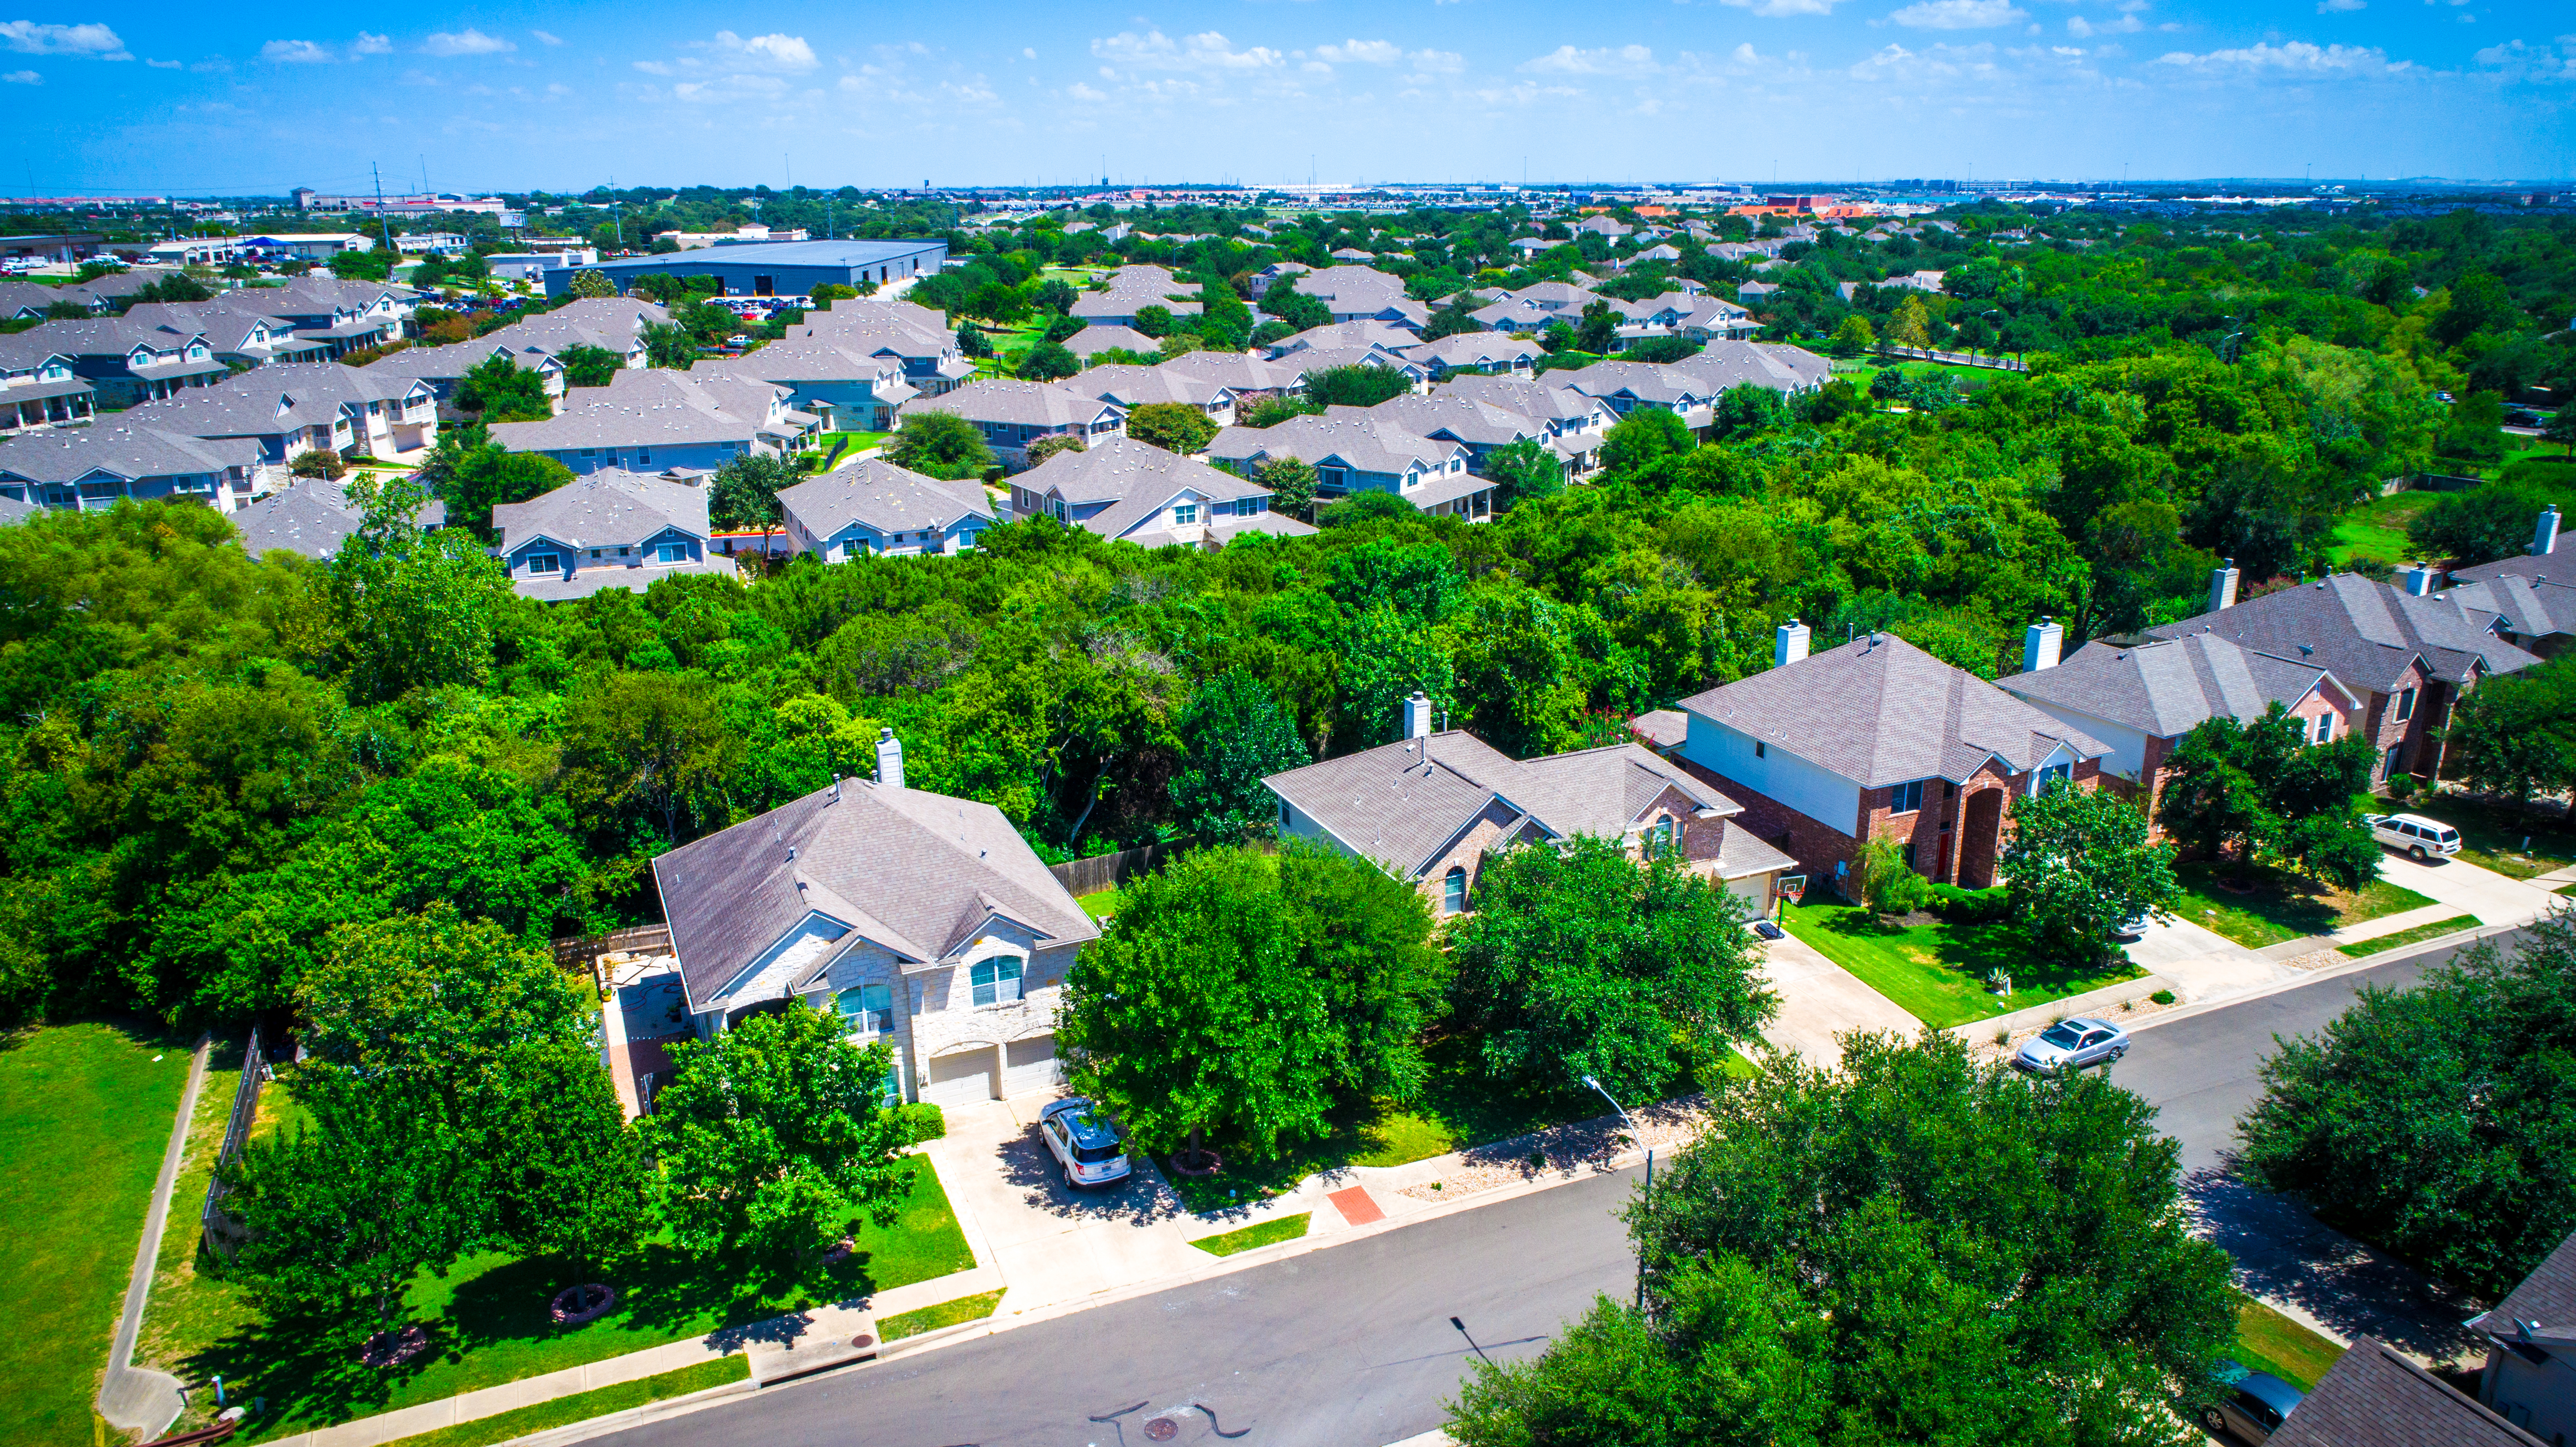 Aerial photo of similar-looking, similar sized suburban houses in rows with trees in between.